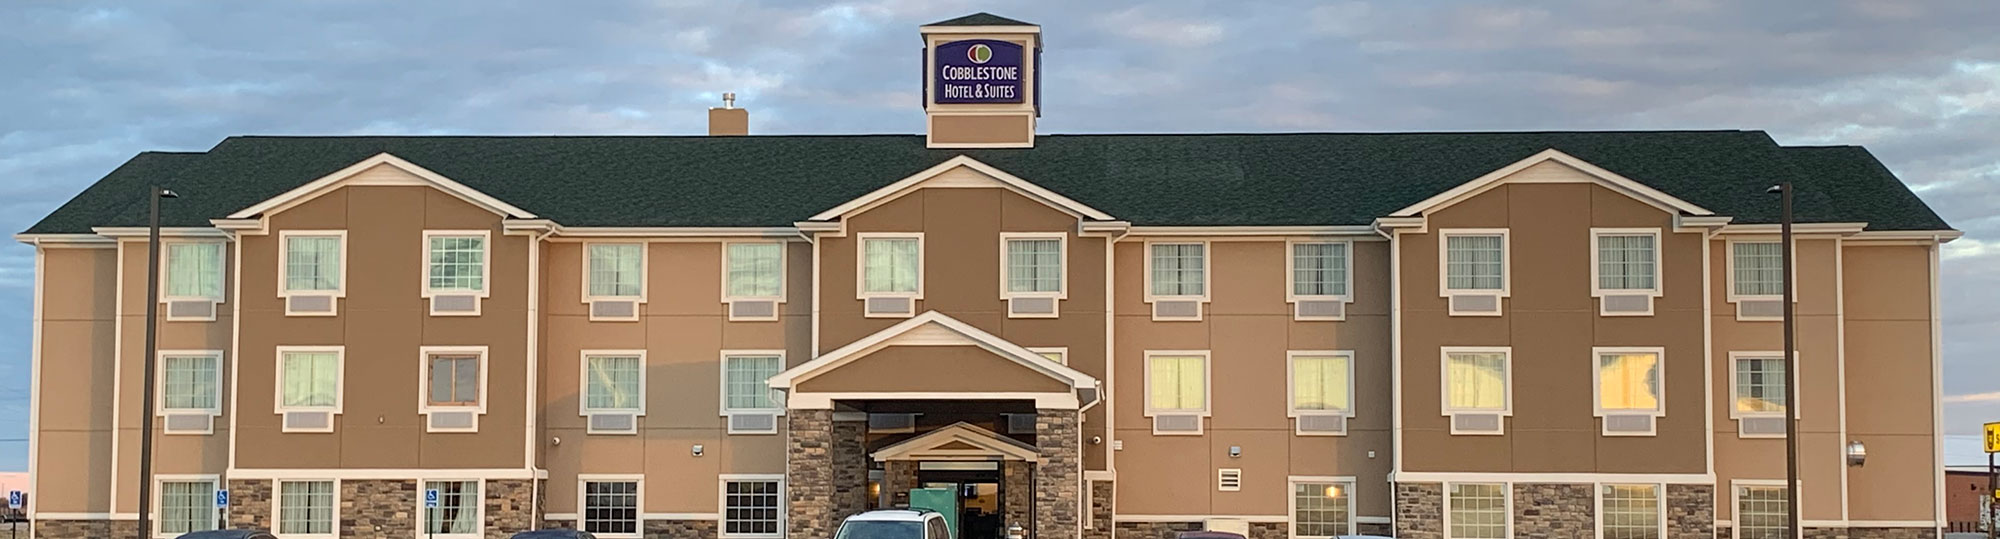 Cobblestone Hotel and Suites Cozad